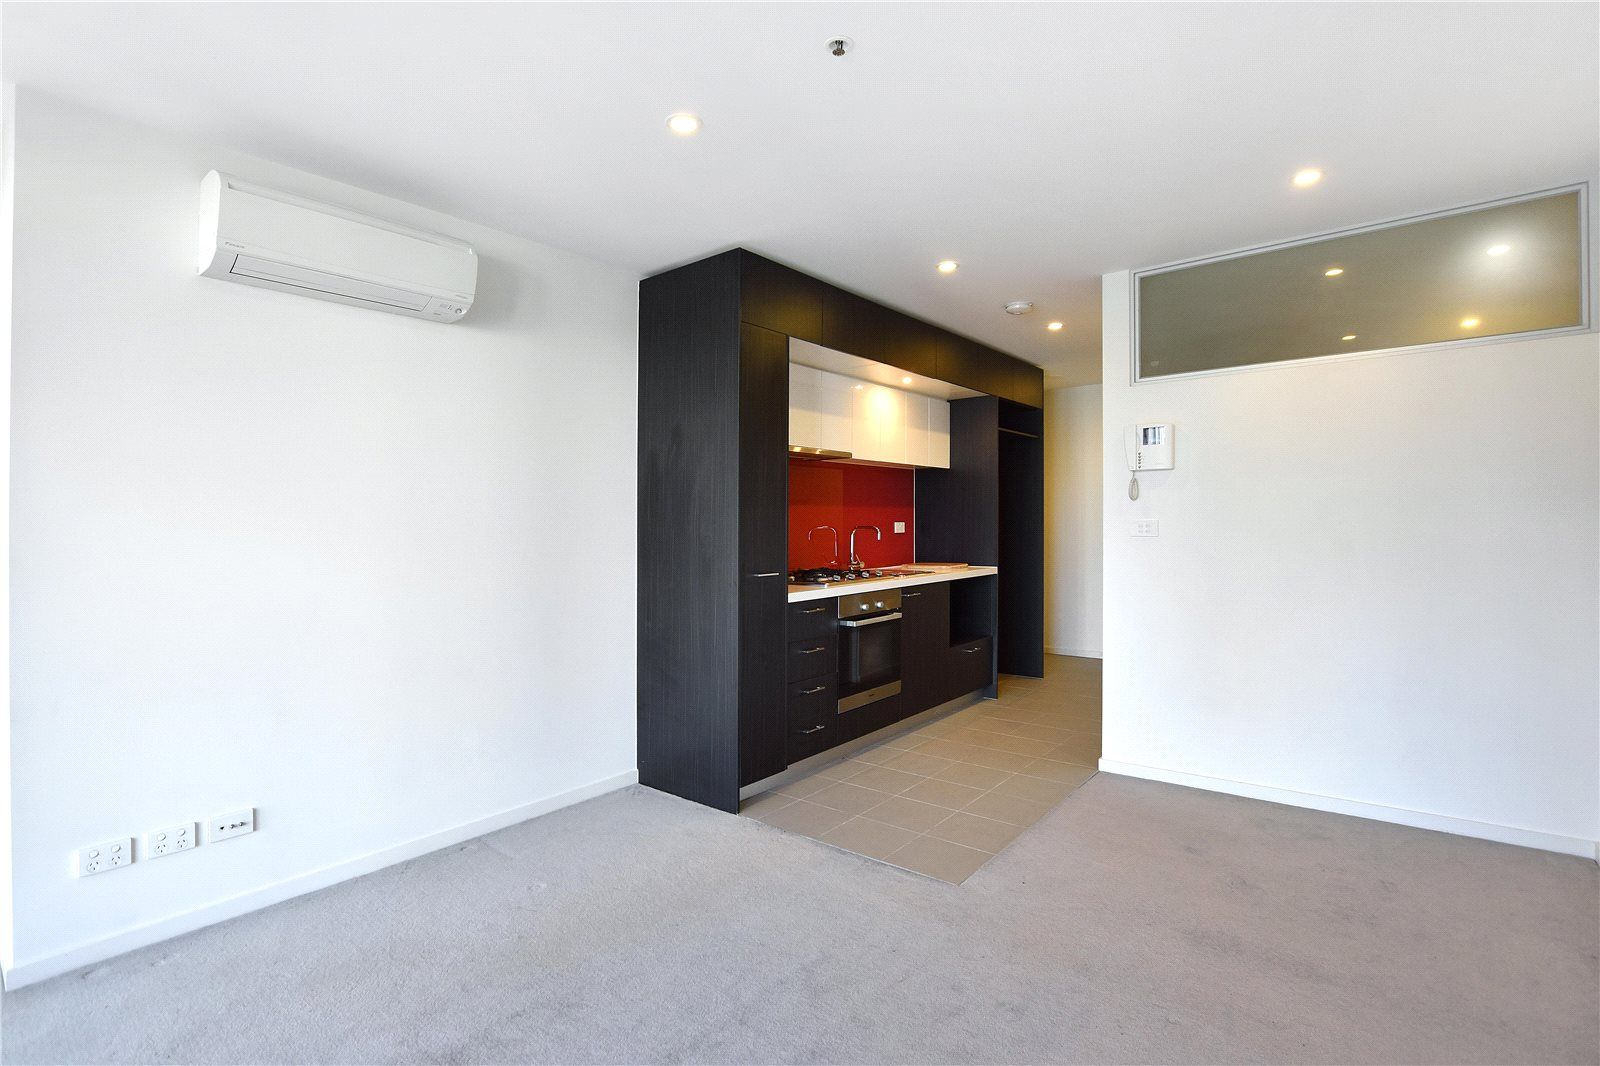 Melbourne Sky: Spacious One Bedroom Apartment in the Heart of Melbourne!